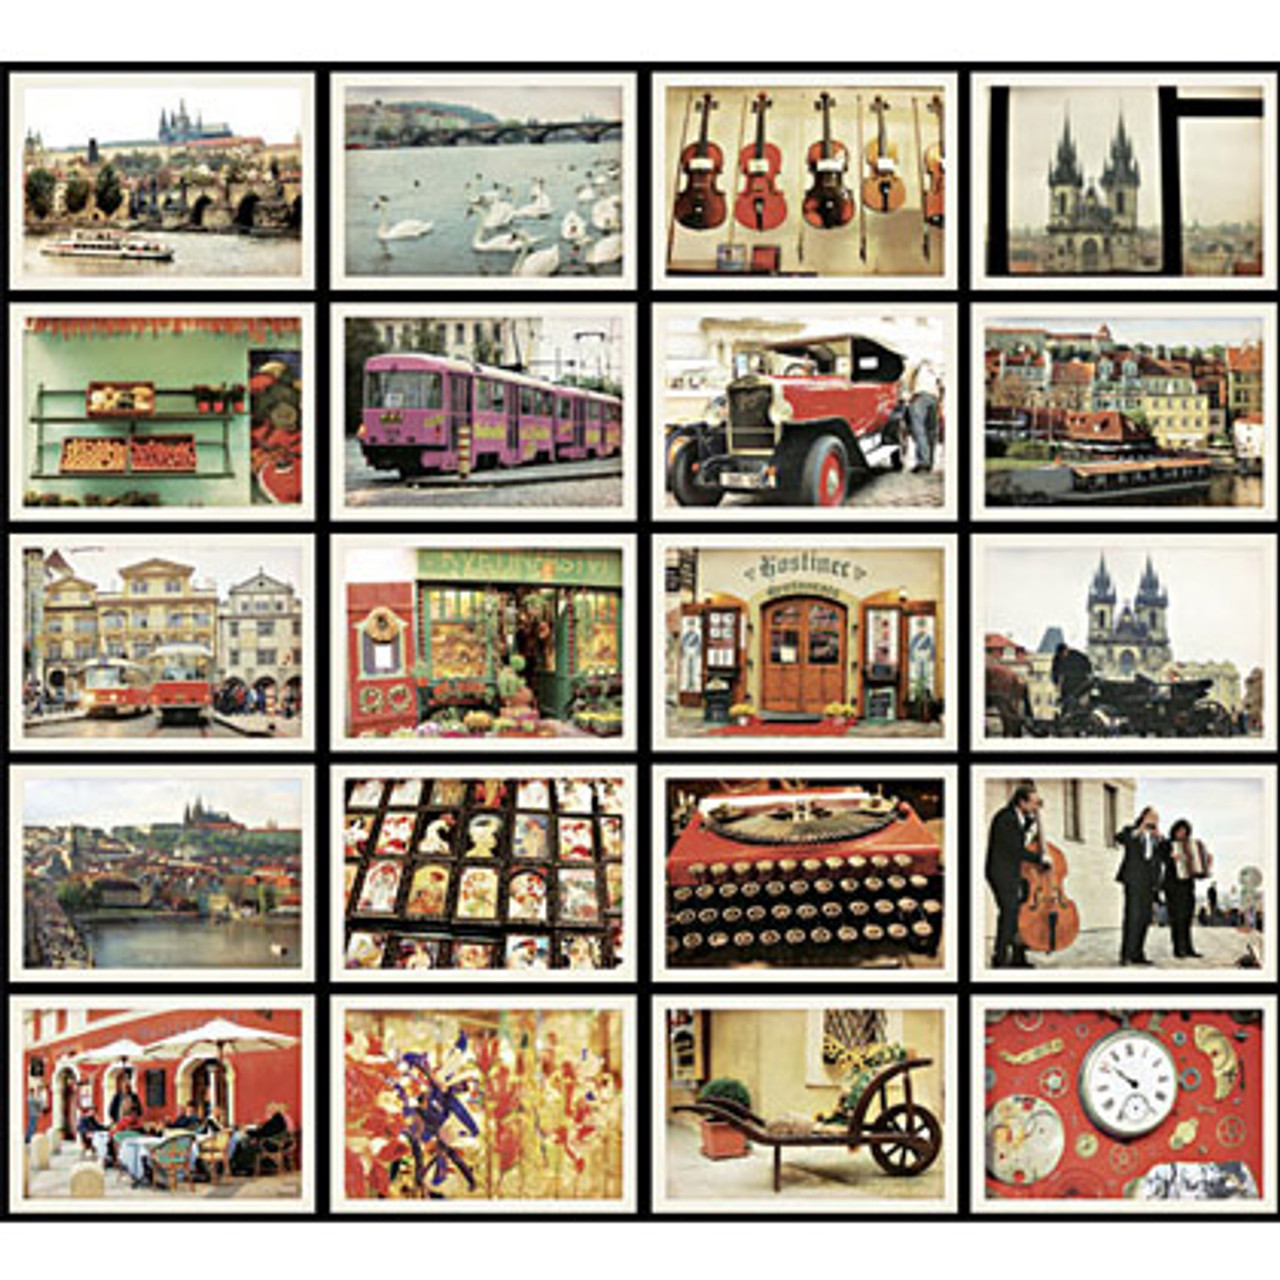 Praha Mini Postcard 56 Sheets And Envelope 36 Sheets Set